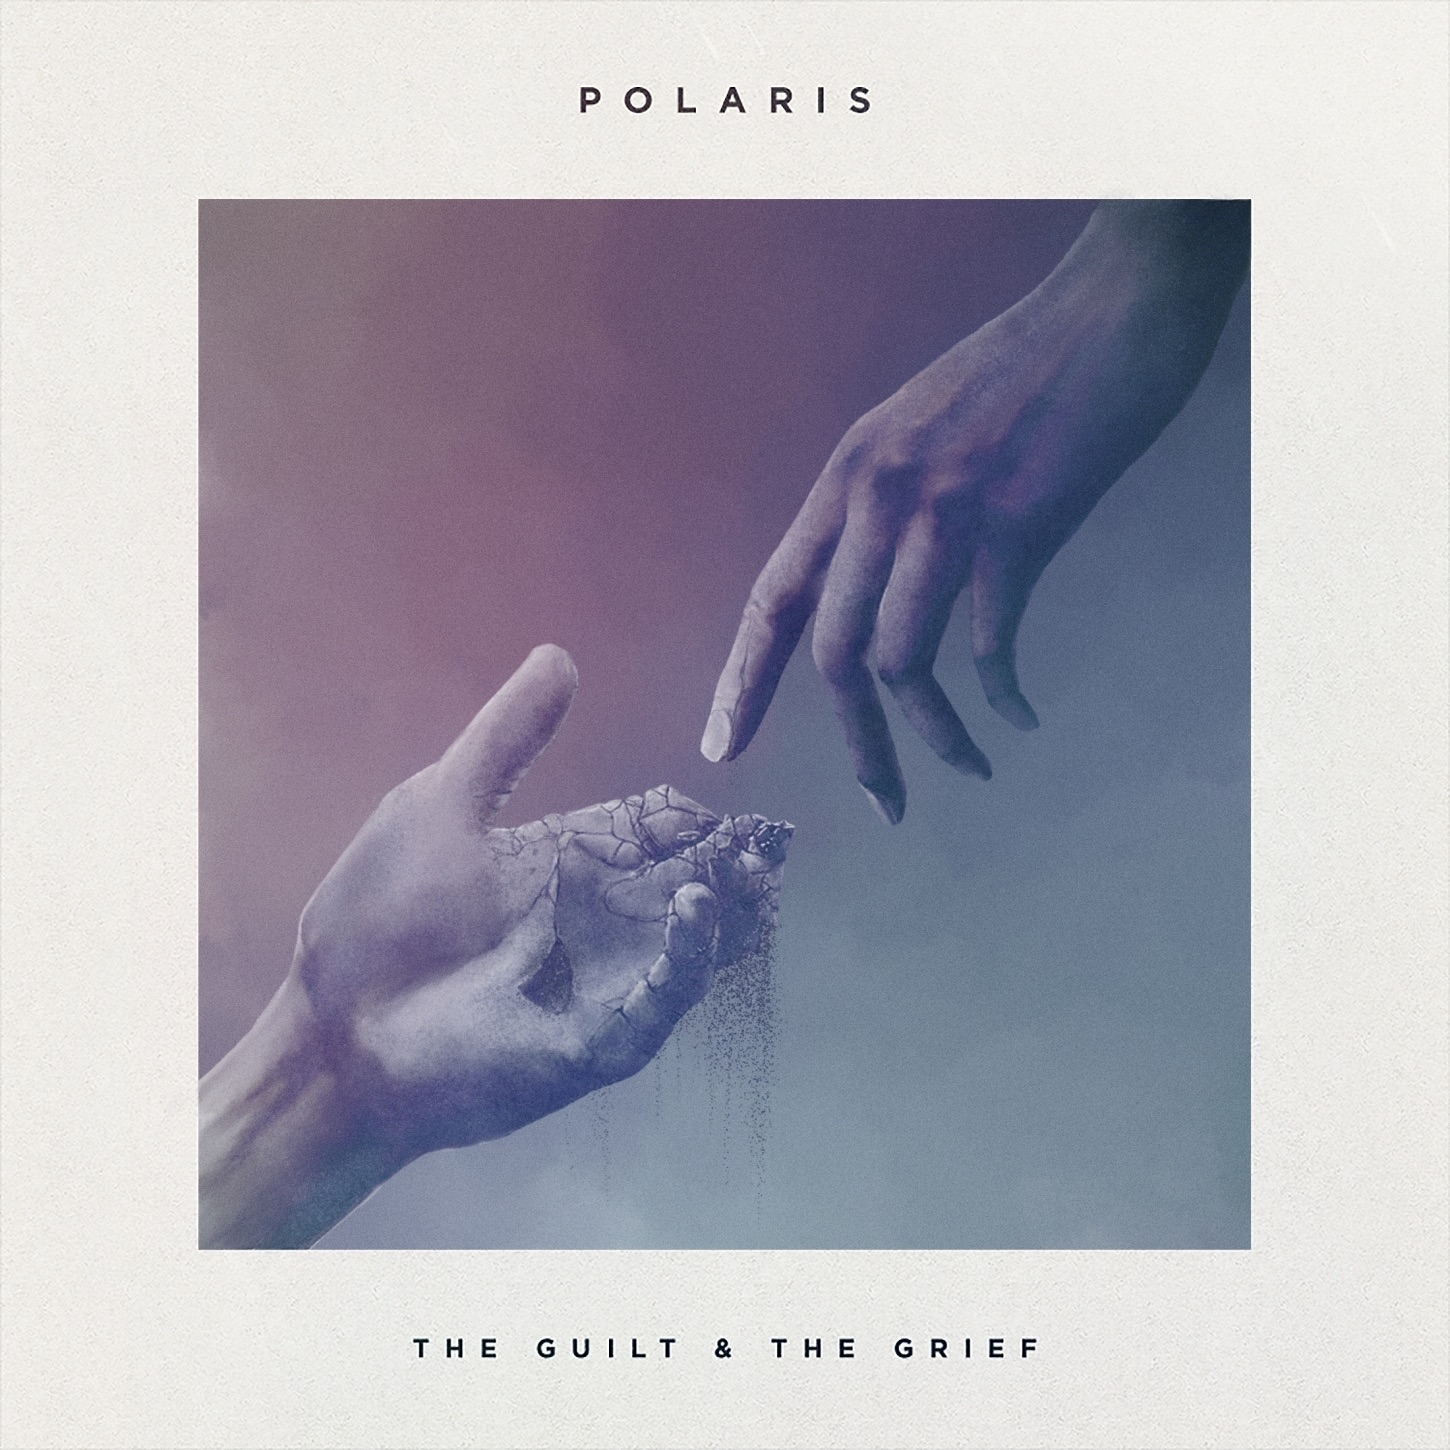 Polaris - The Guilt & The Grief [EP] (2016)